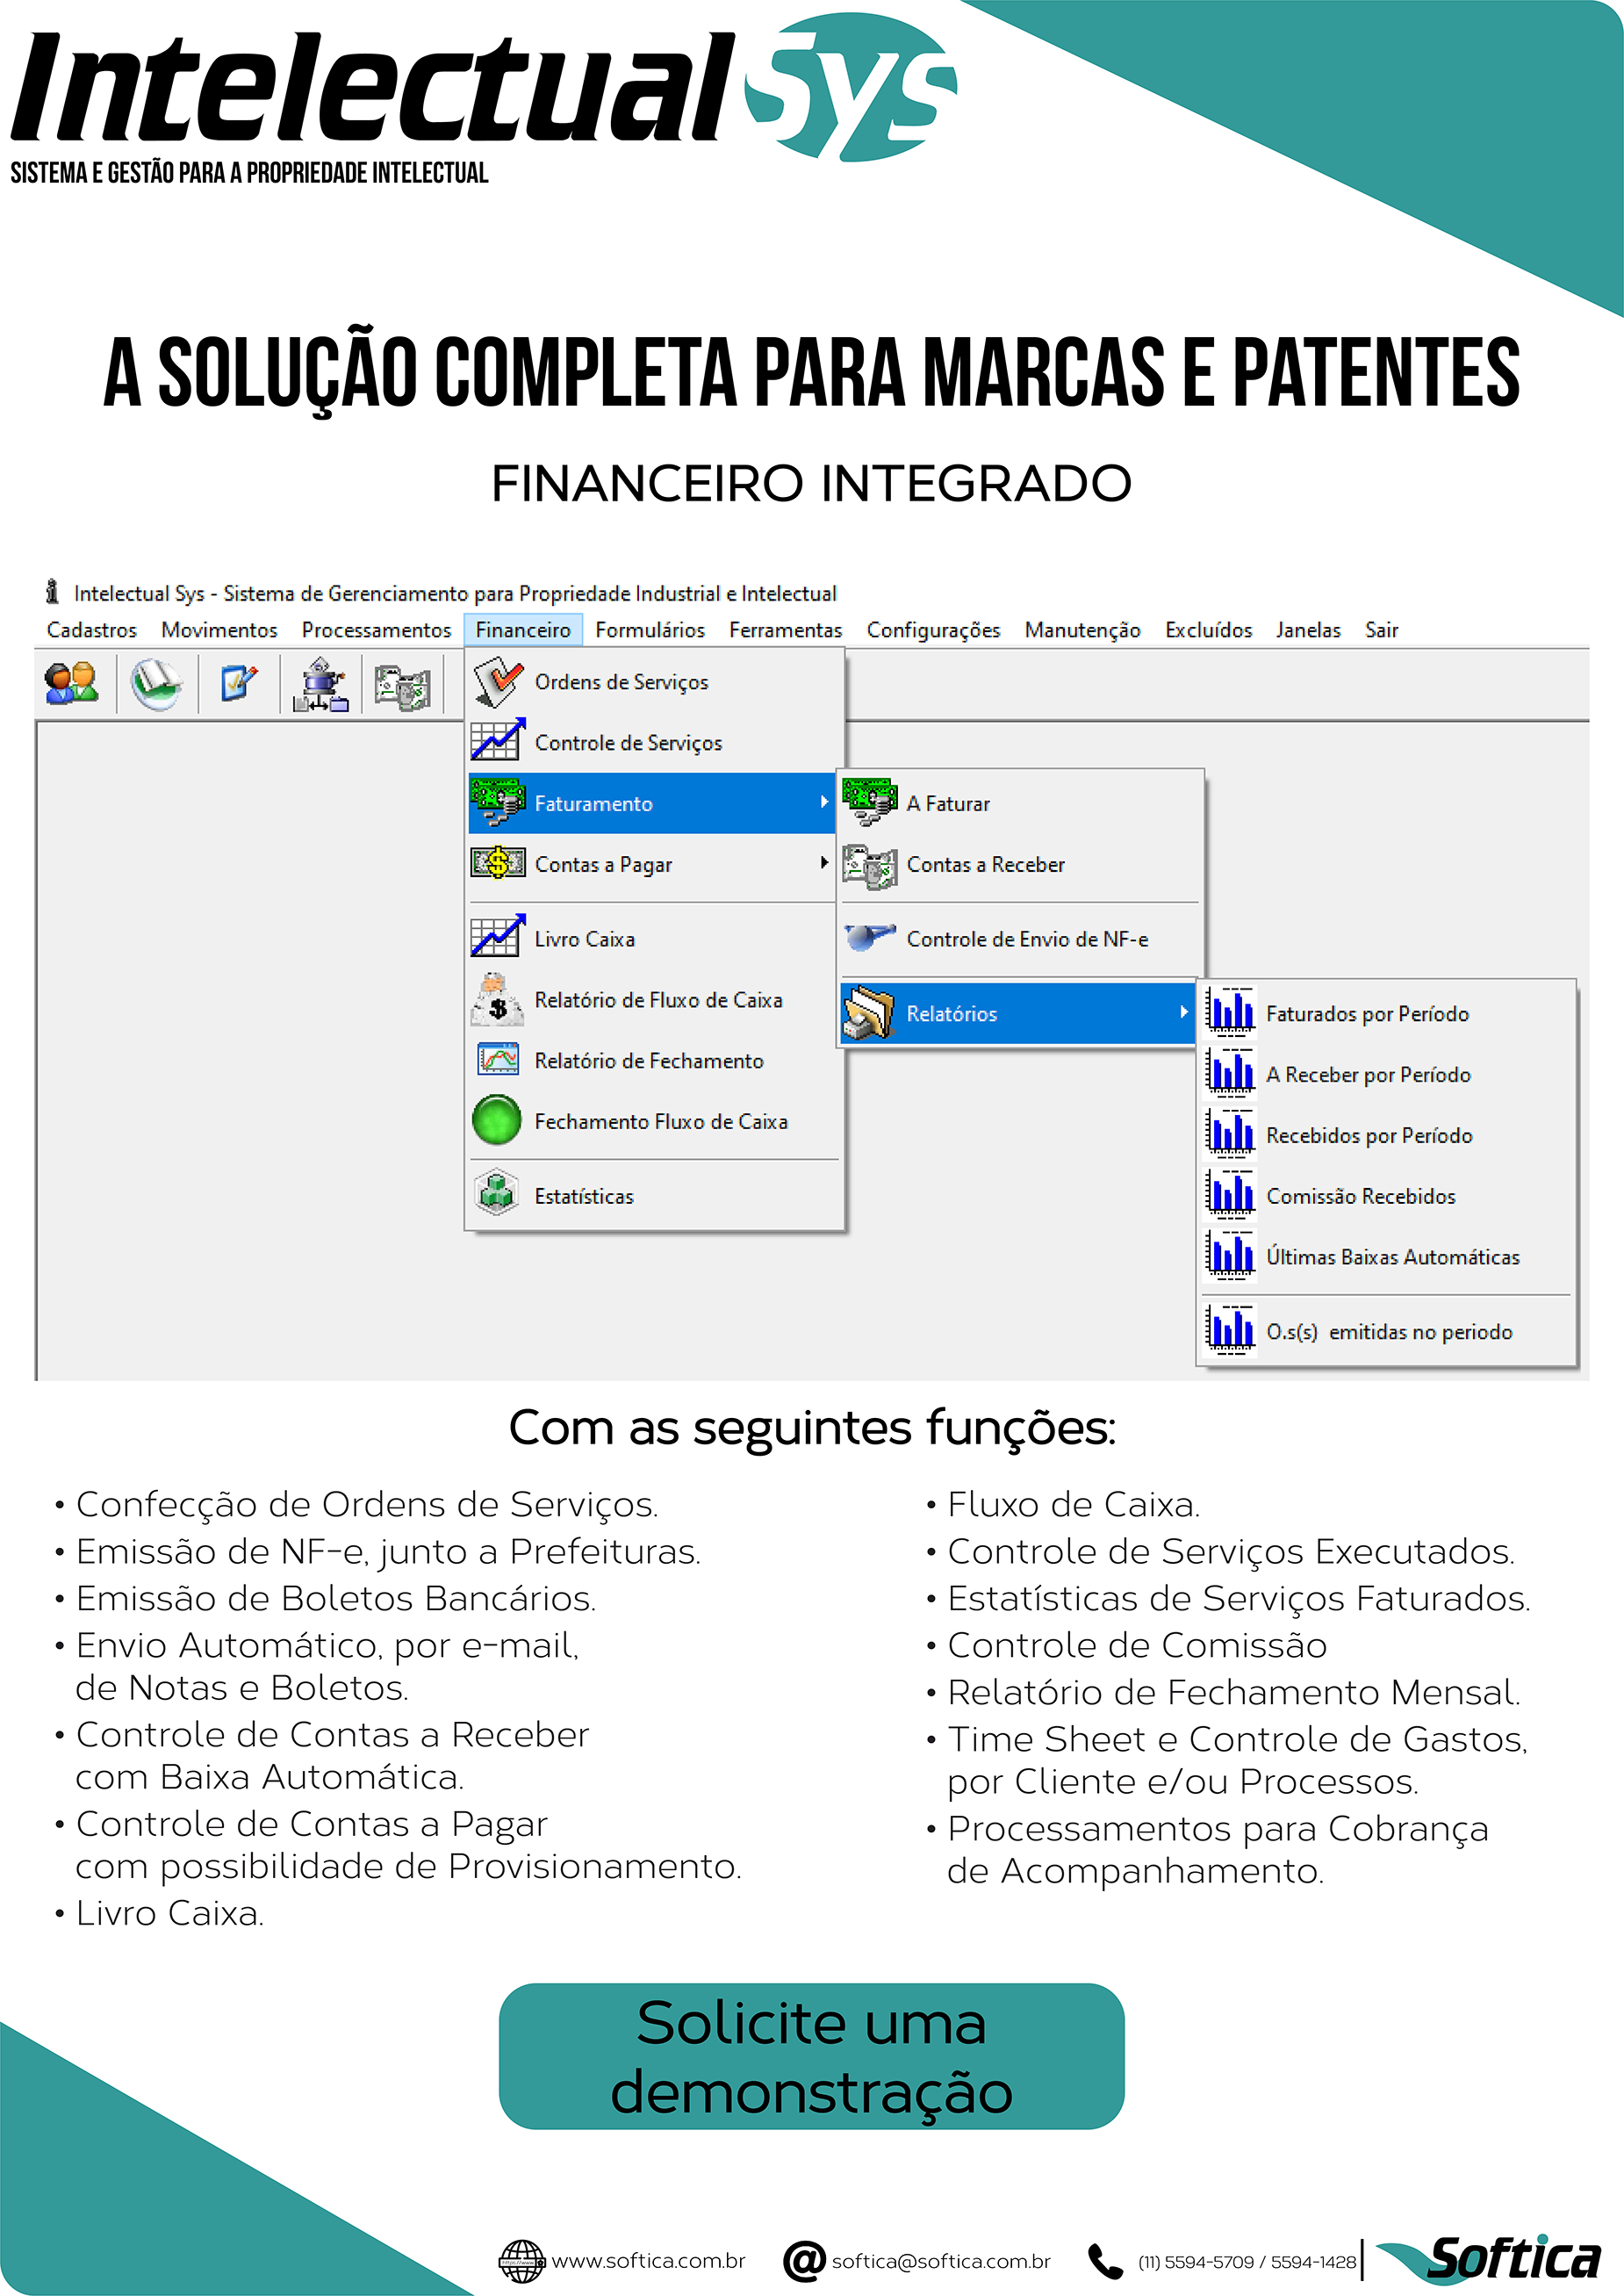 Folder ampliado do financeiro do IntelectualSys